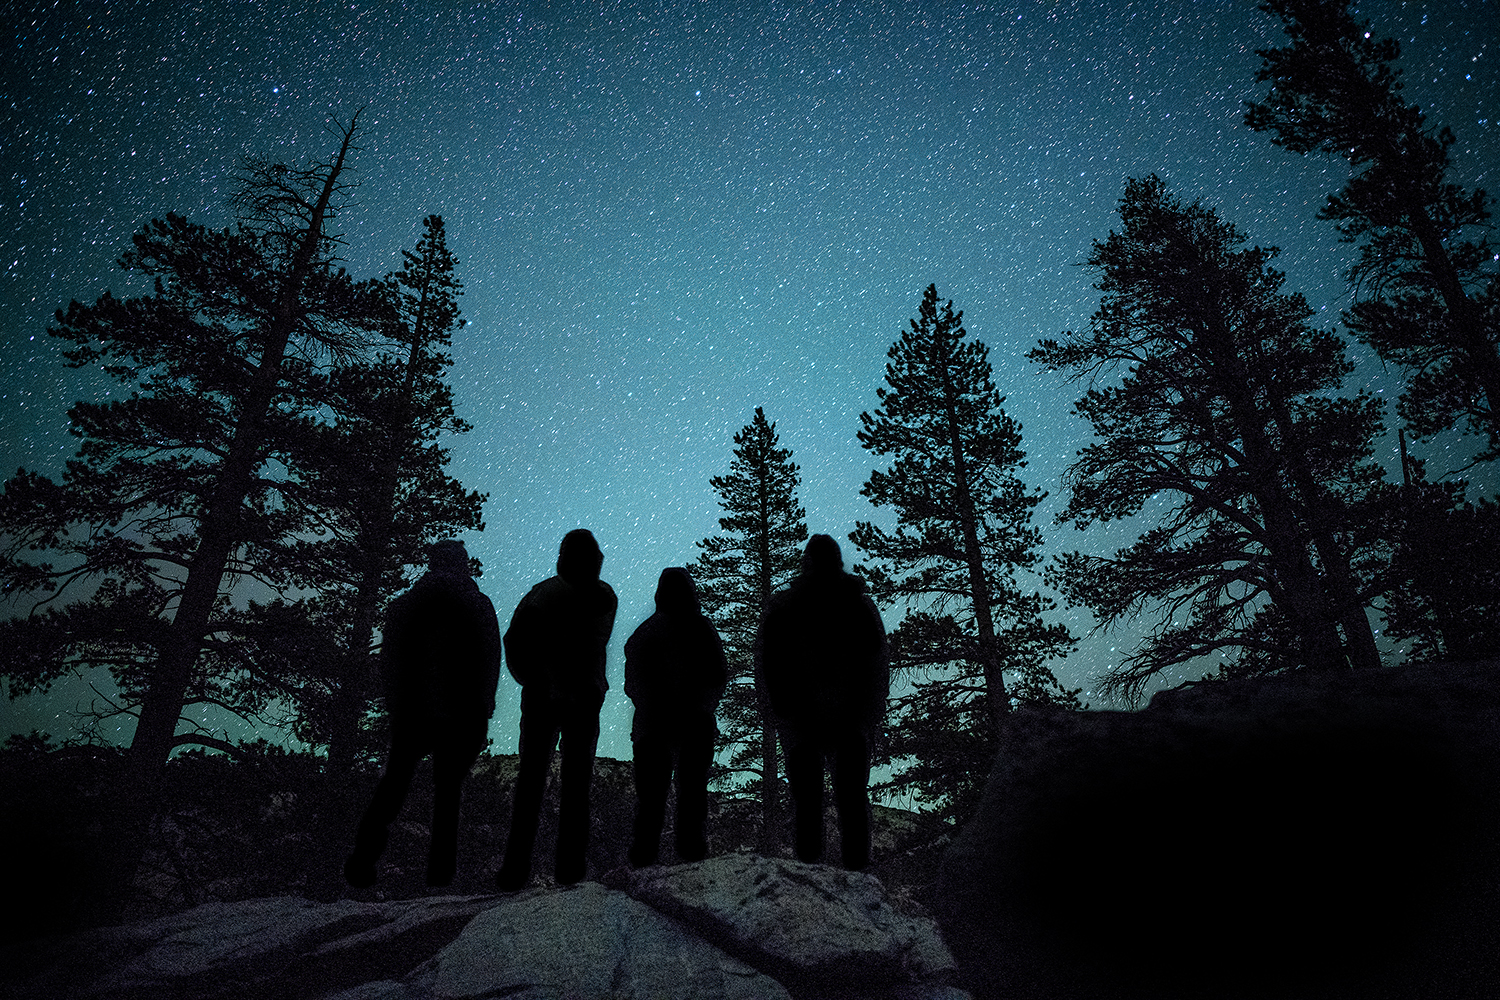 Yosemite Pilgrimage participants dazzled by the night sky, photo by Yosemite photographer-in-residence  Ian Momsen .